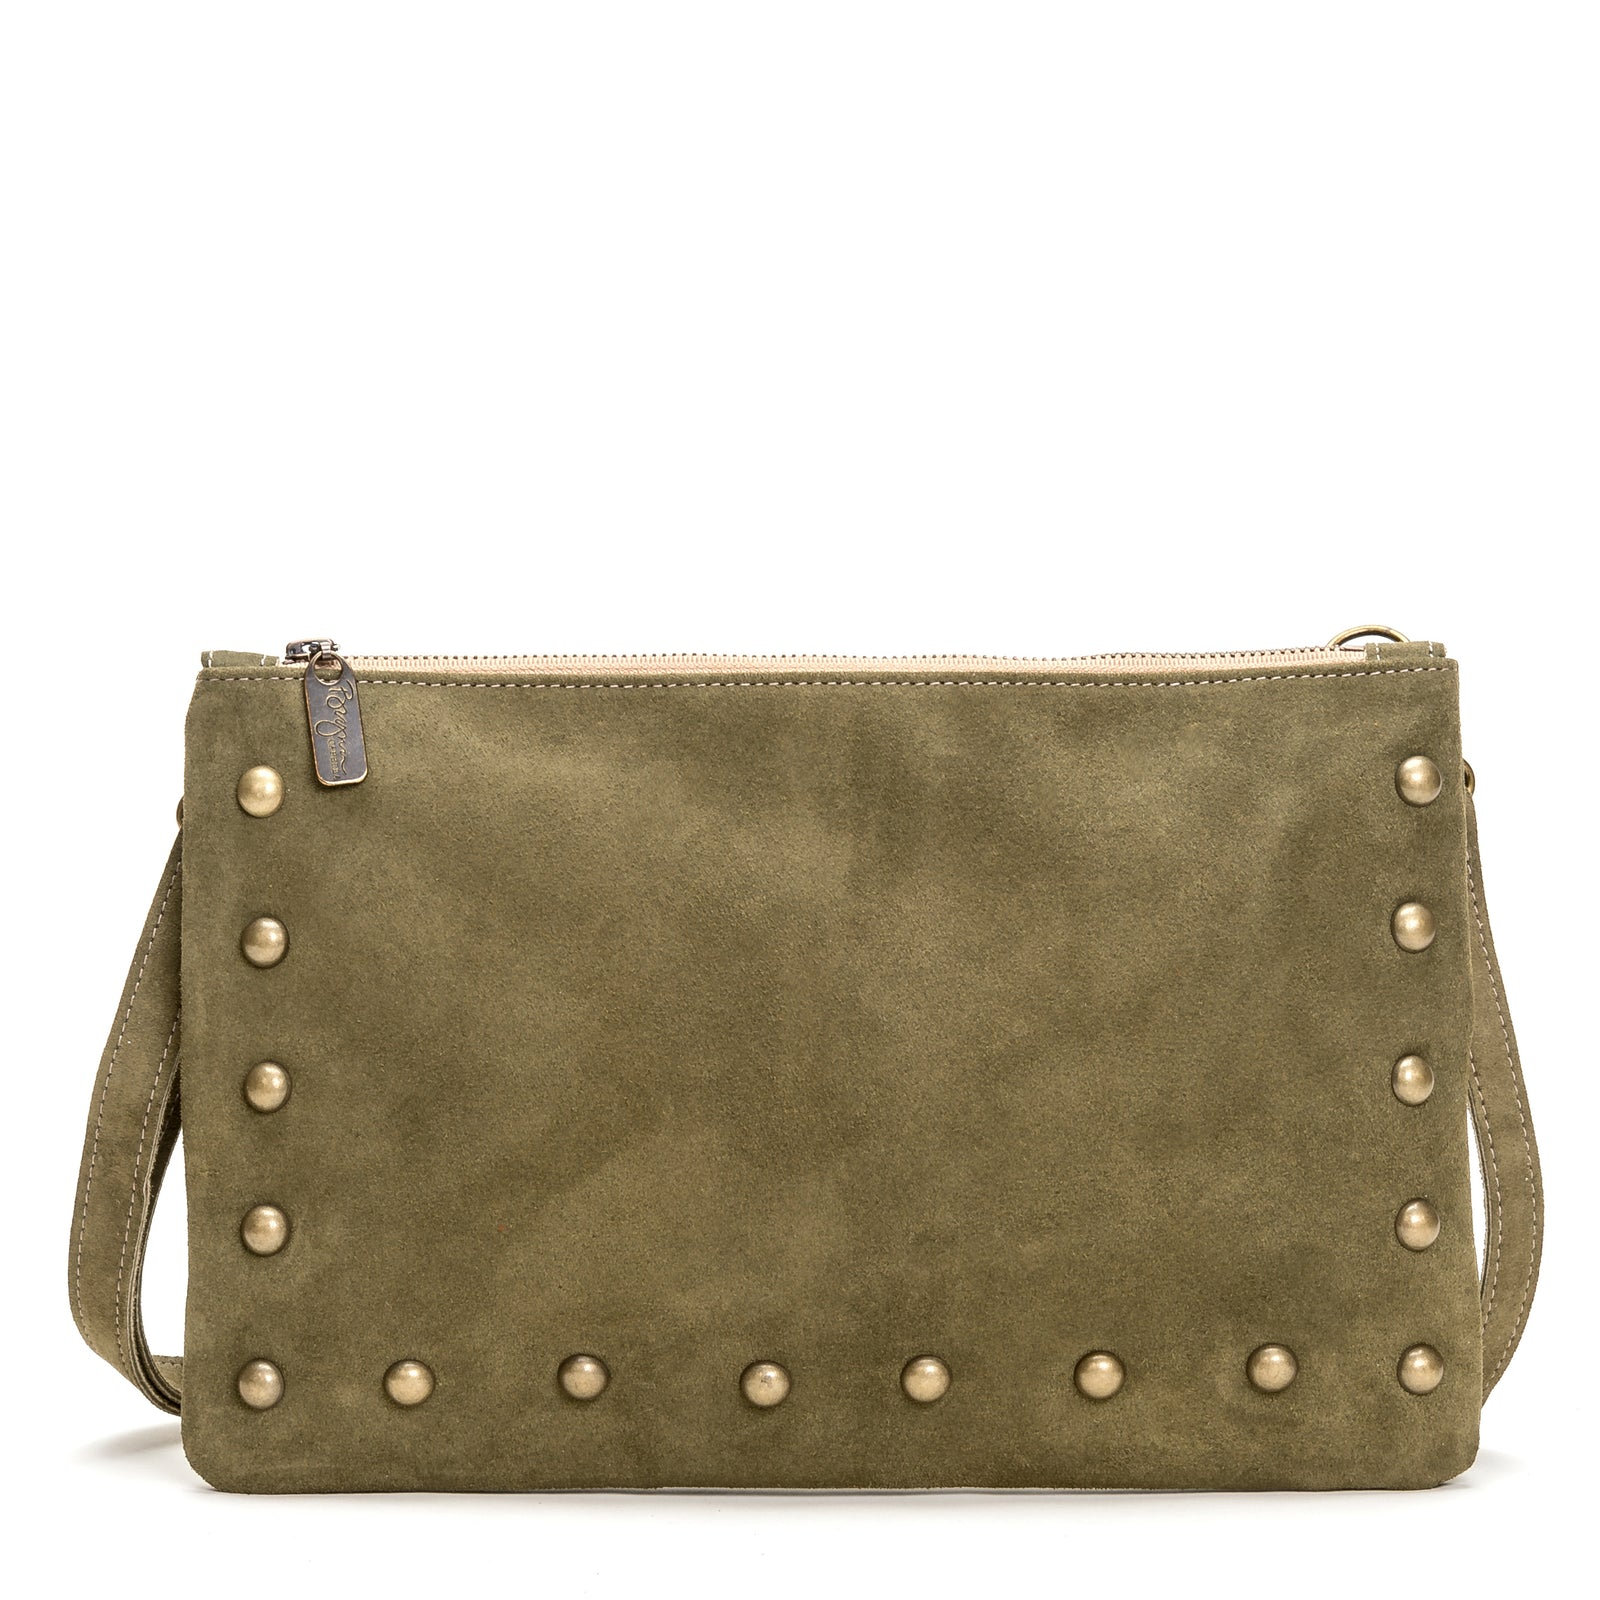 Nikki Clutch/Crossbody - Greenwich - Brynn Capella, Small Crossbody